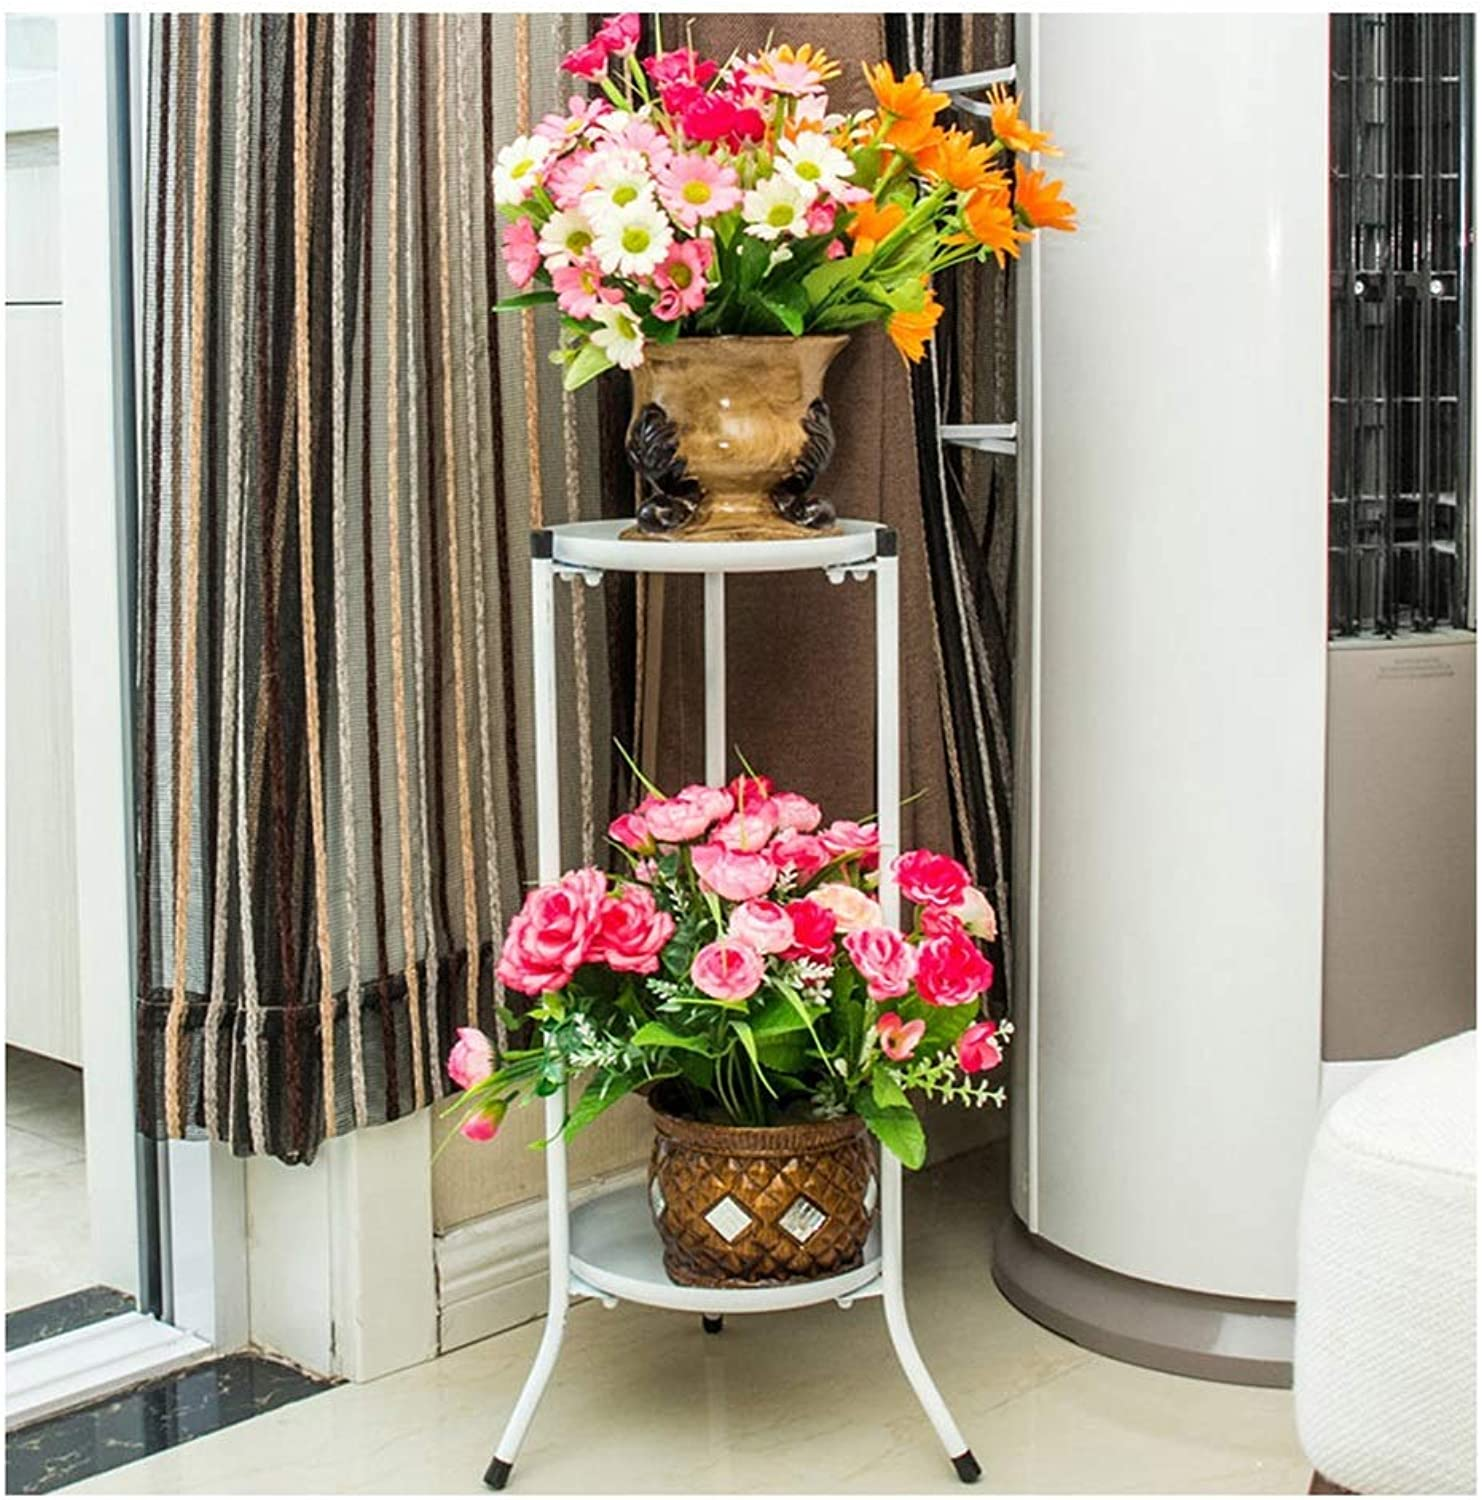 Gifts & Decor Plant Stand Shelf Flower Stand Flower Pot Holder Iron Art Double Layer Floor-Standing Living Room Balcony Indoor Simple Decoration (color   White)